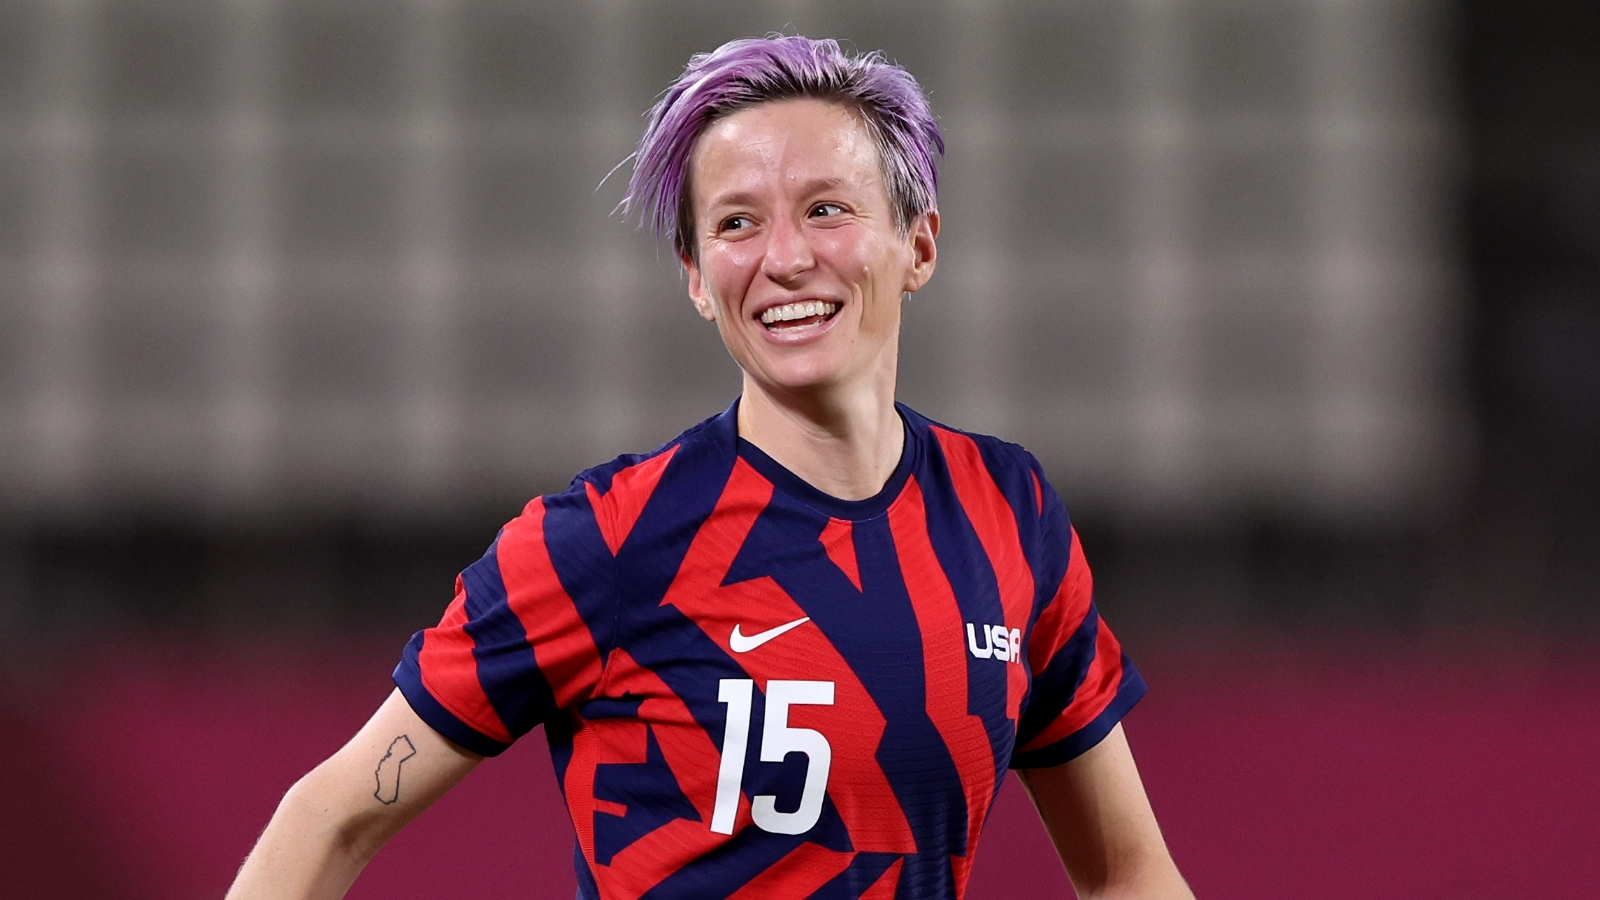 'It's always going to be hard to step away' - Rapinoe discusses retirement after USWNT clinch Olympic bronze medal